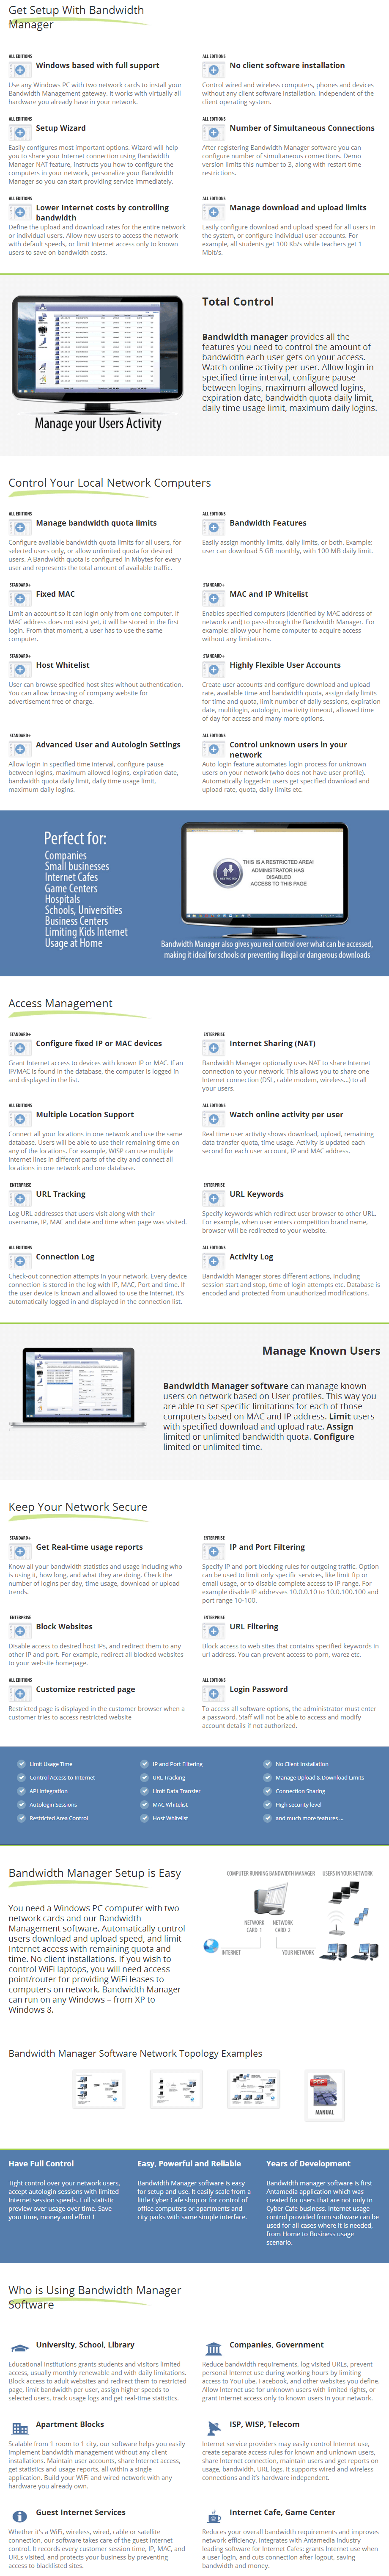 Antamedia Bandwidth Manager key Features